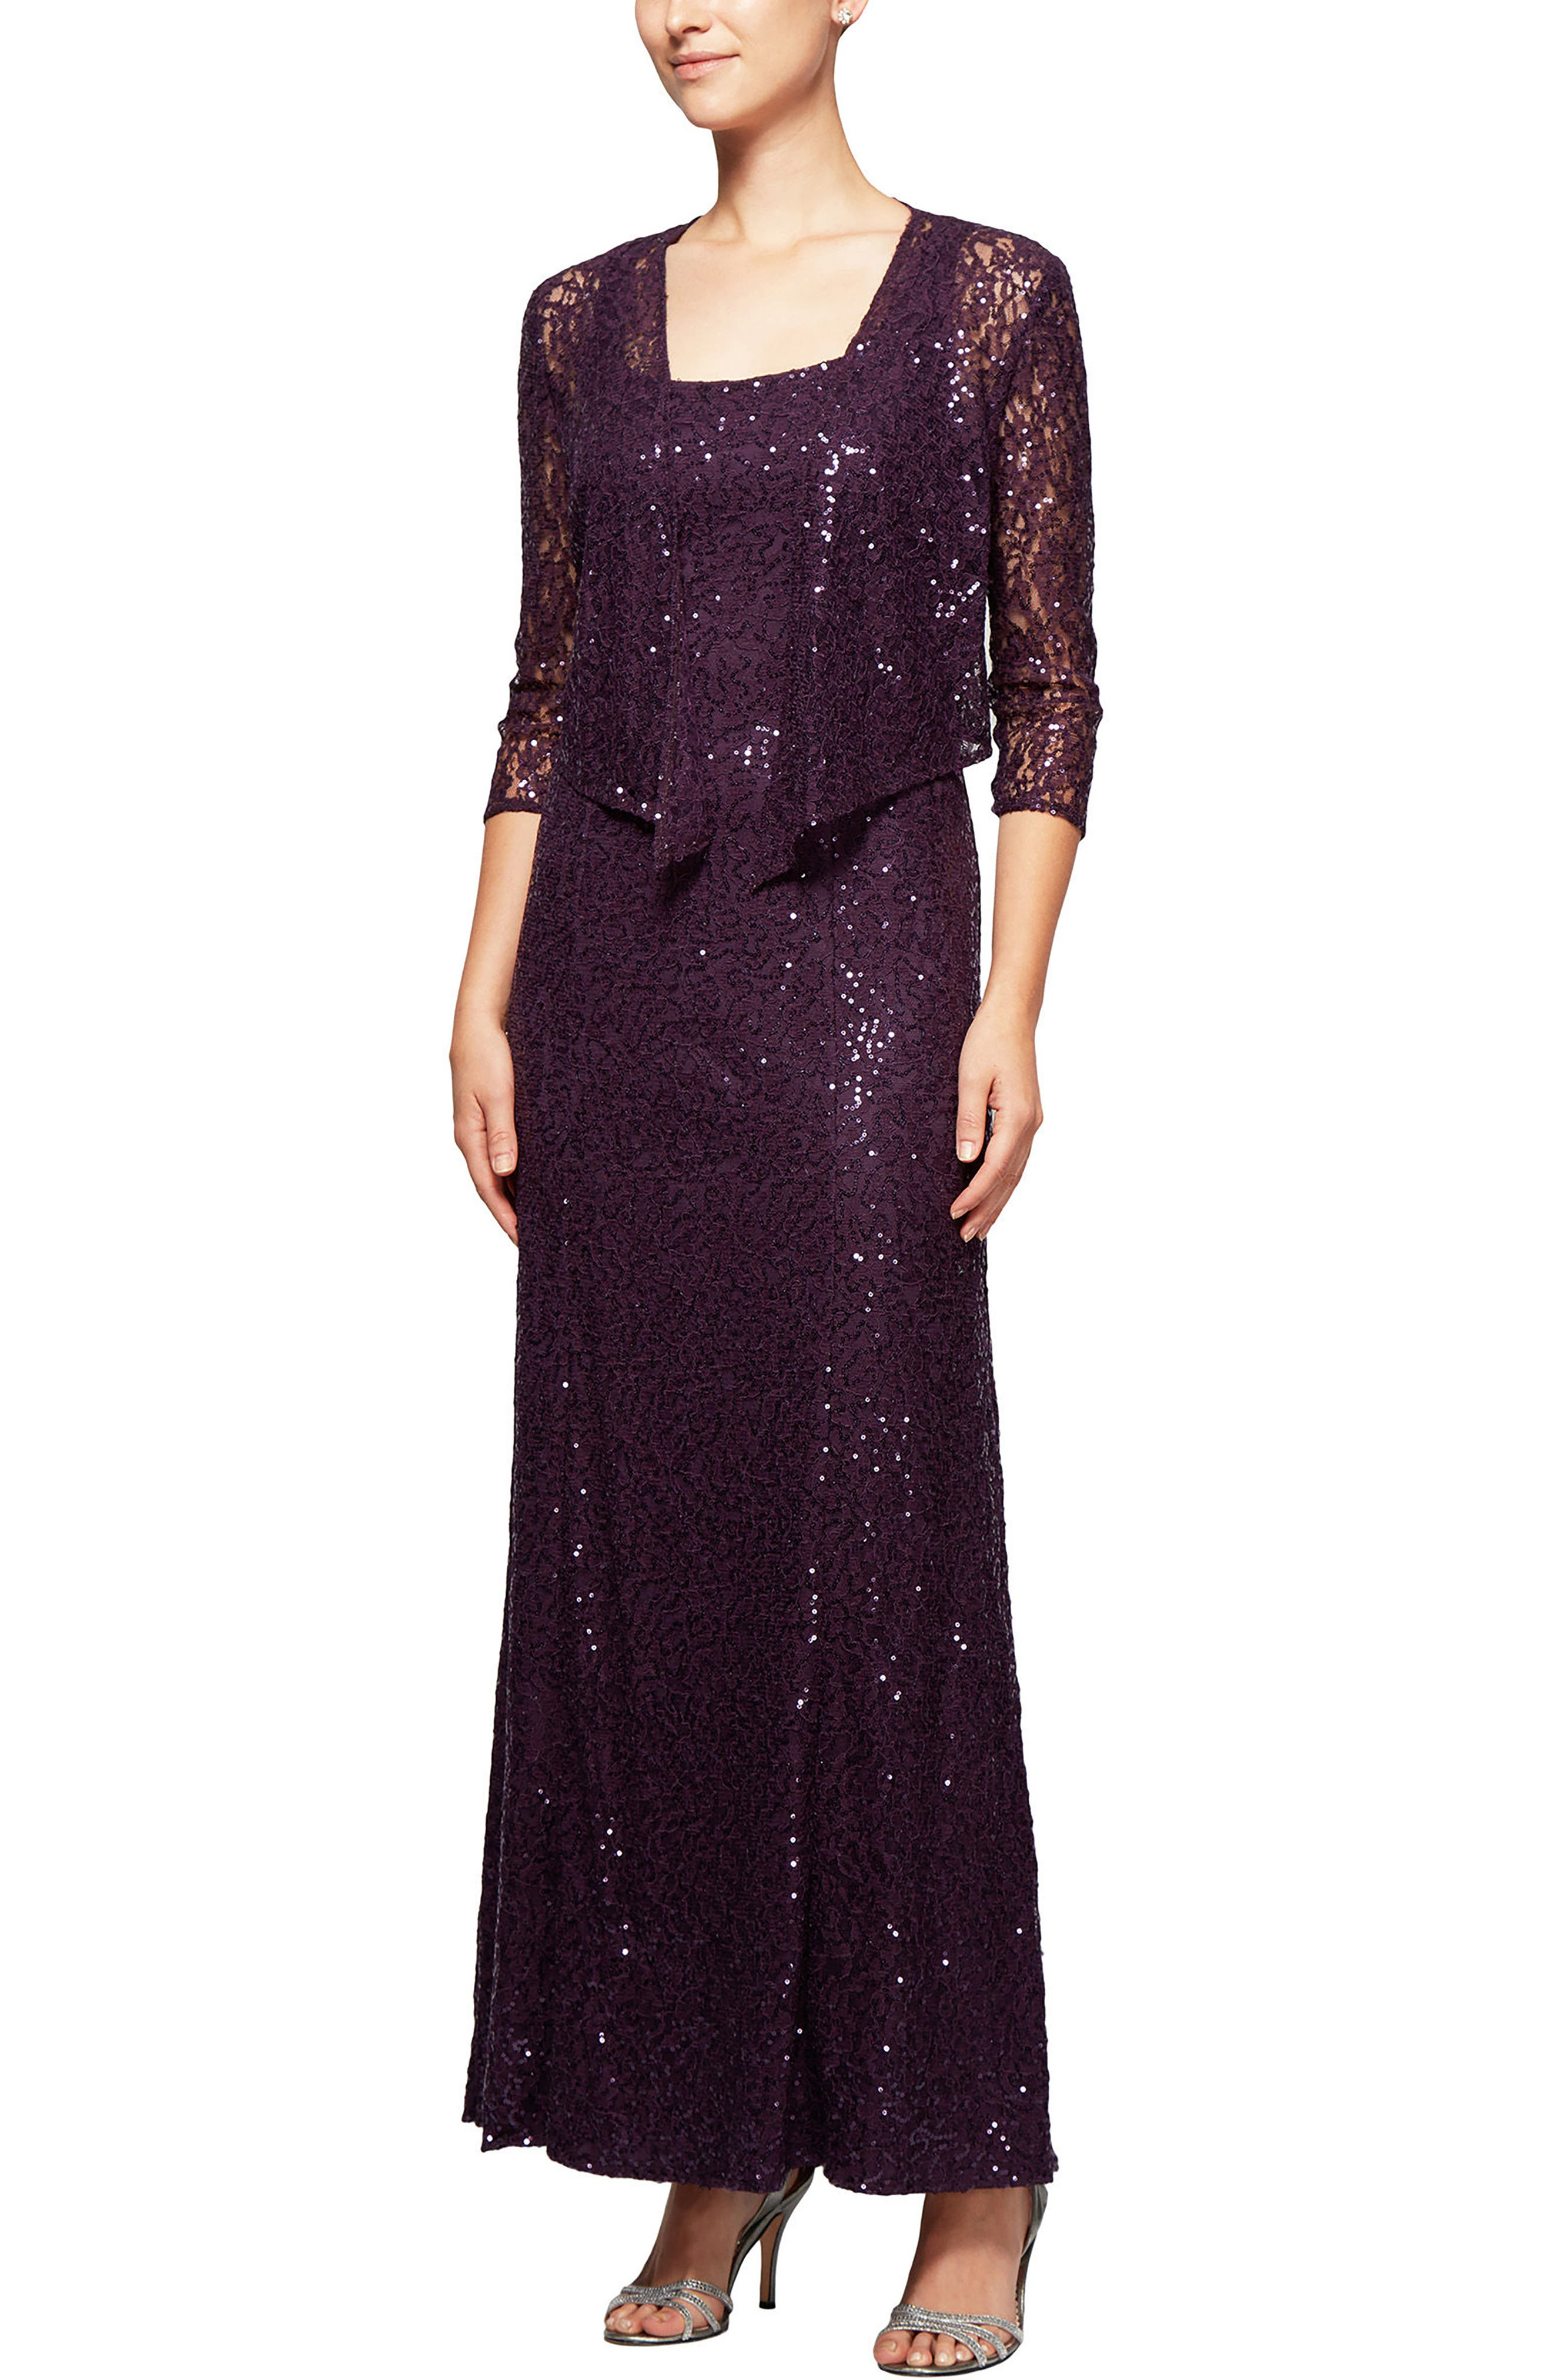 Sequin Lace Long Dress with Jacket,                             Main thumbnail 1, color,                             540